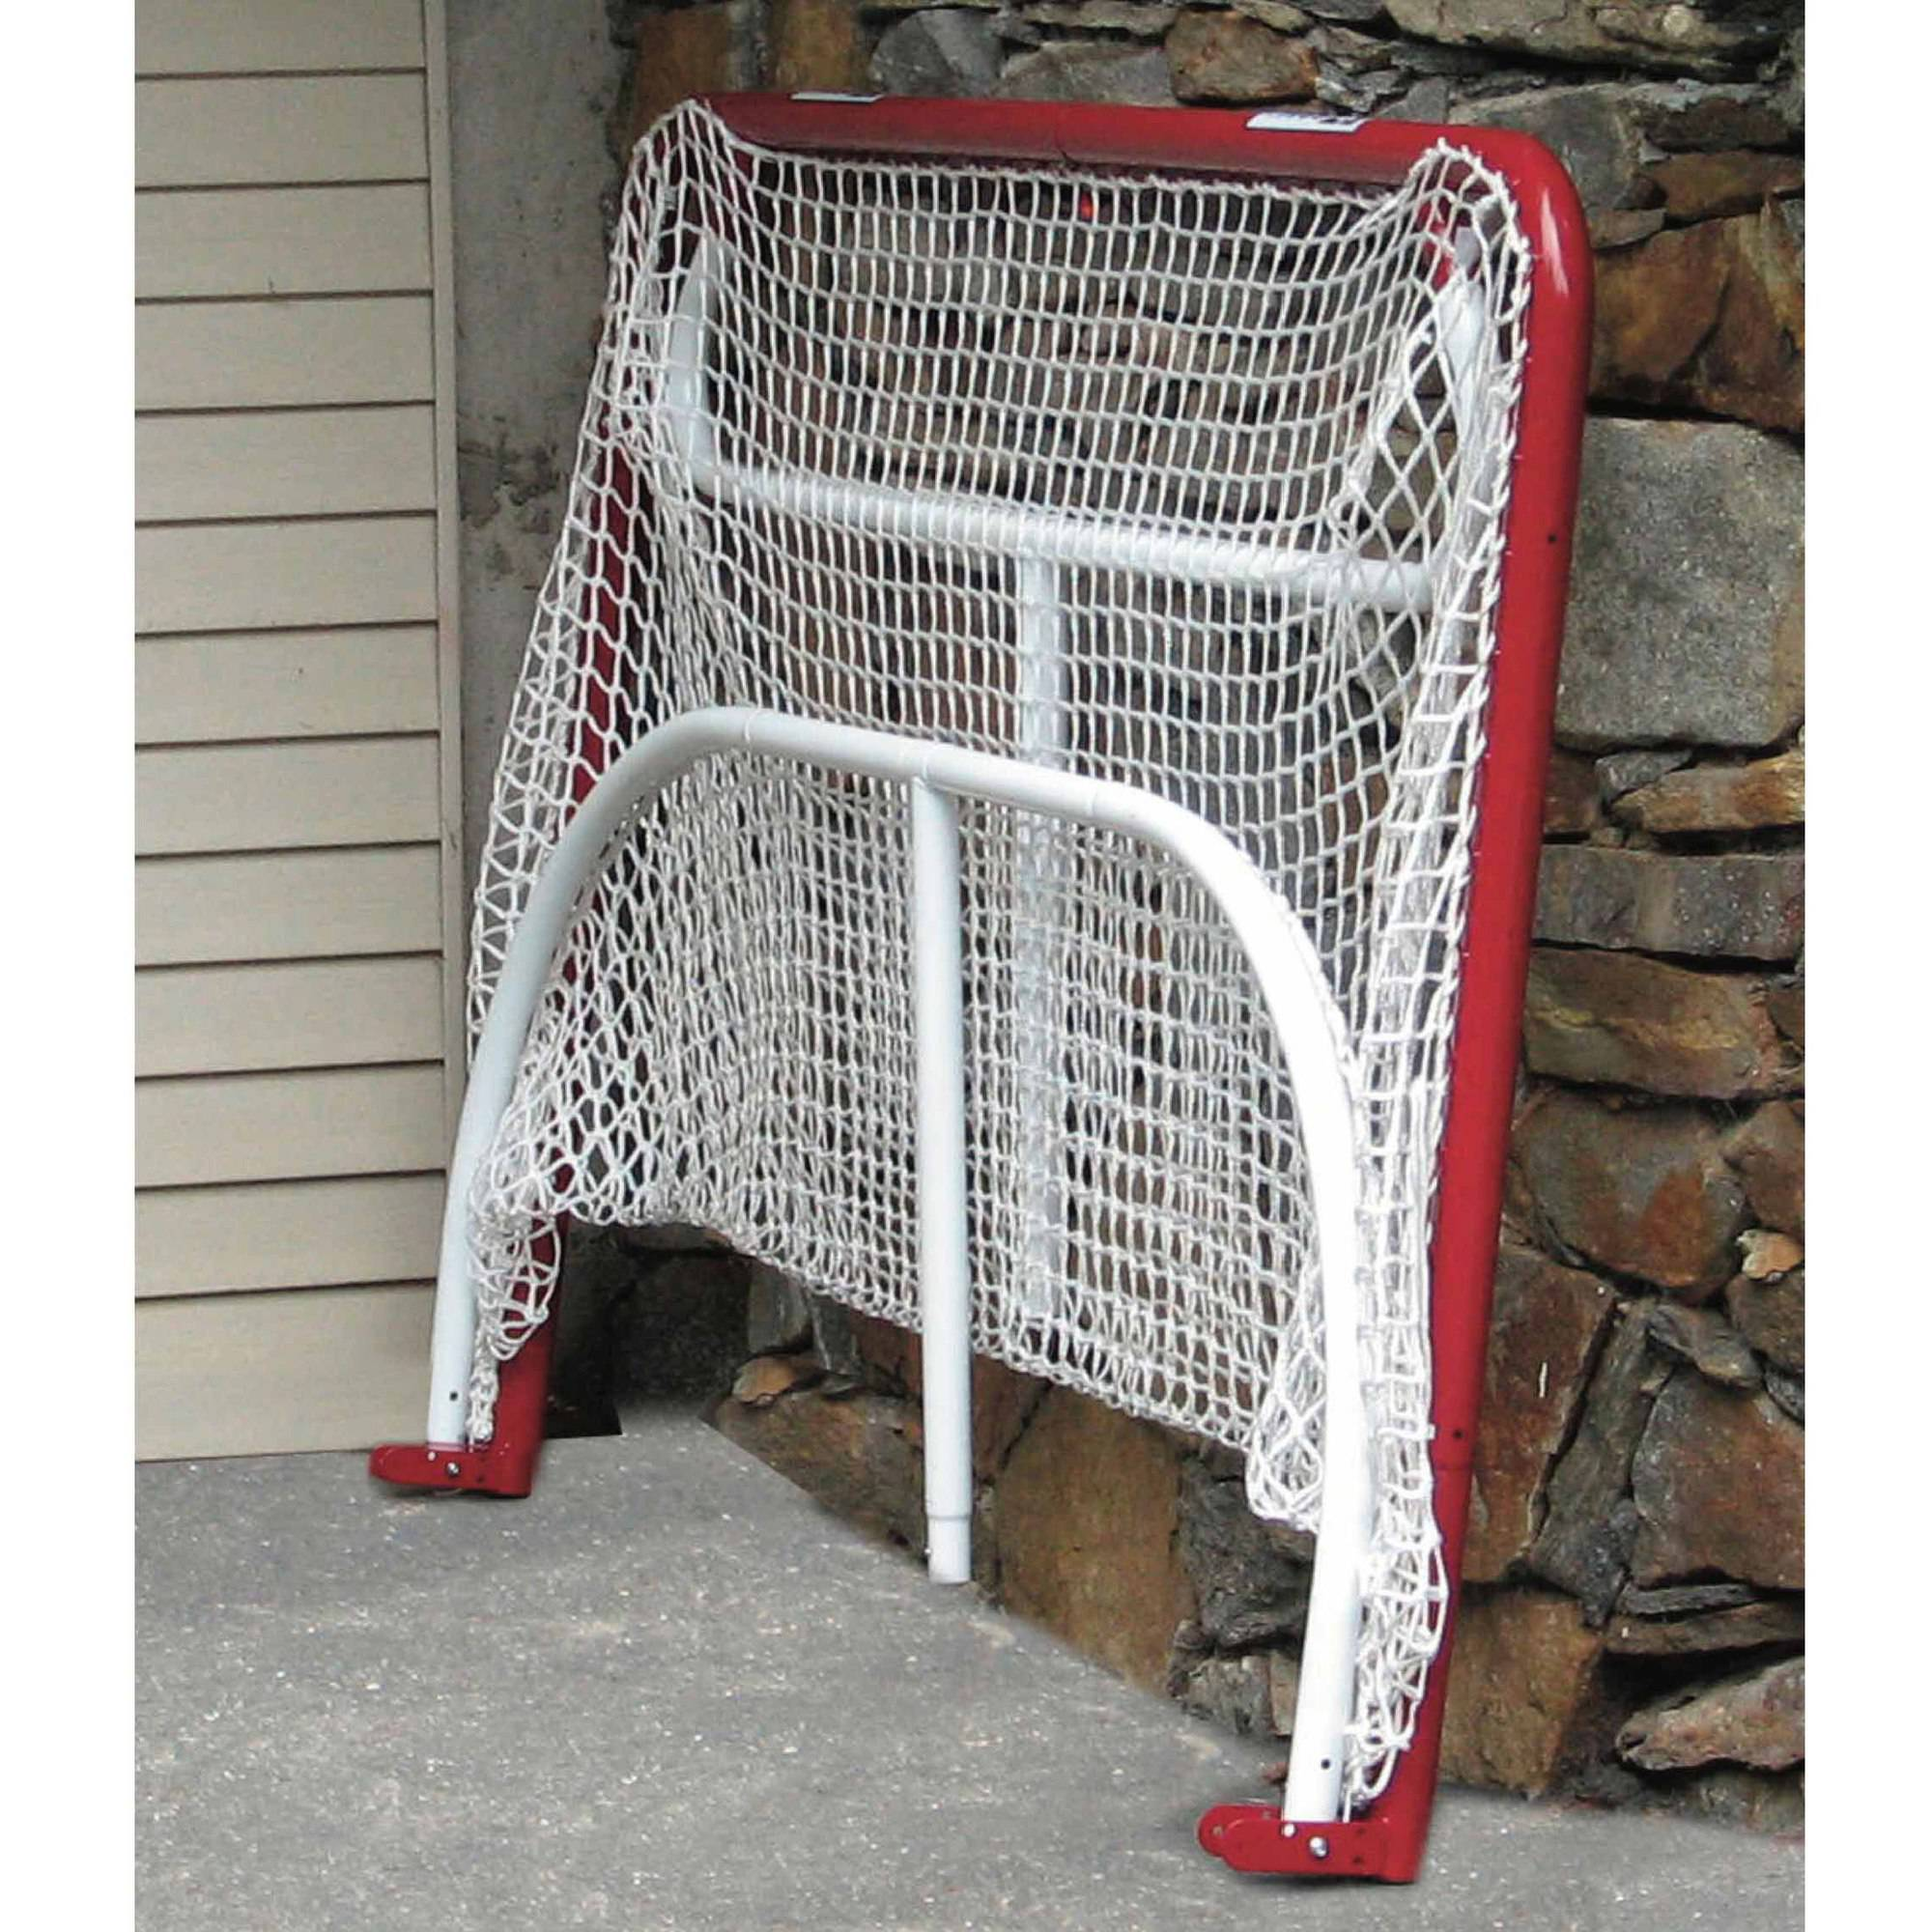 "EZgoal Monster 6' x 4'2"" Steel Tube Official Regulation Folding Metal Hockey Goal Net with 4 Net Pocket Targets"